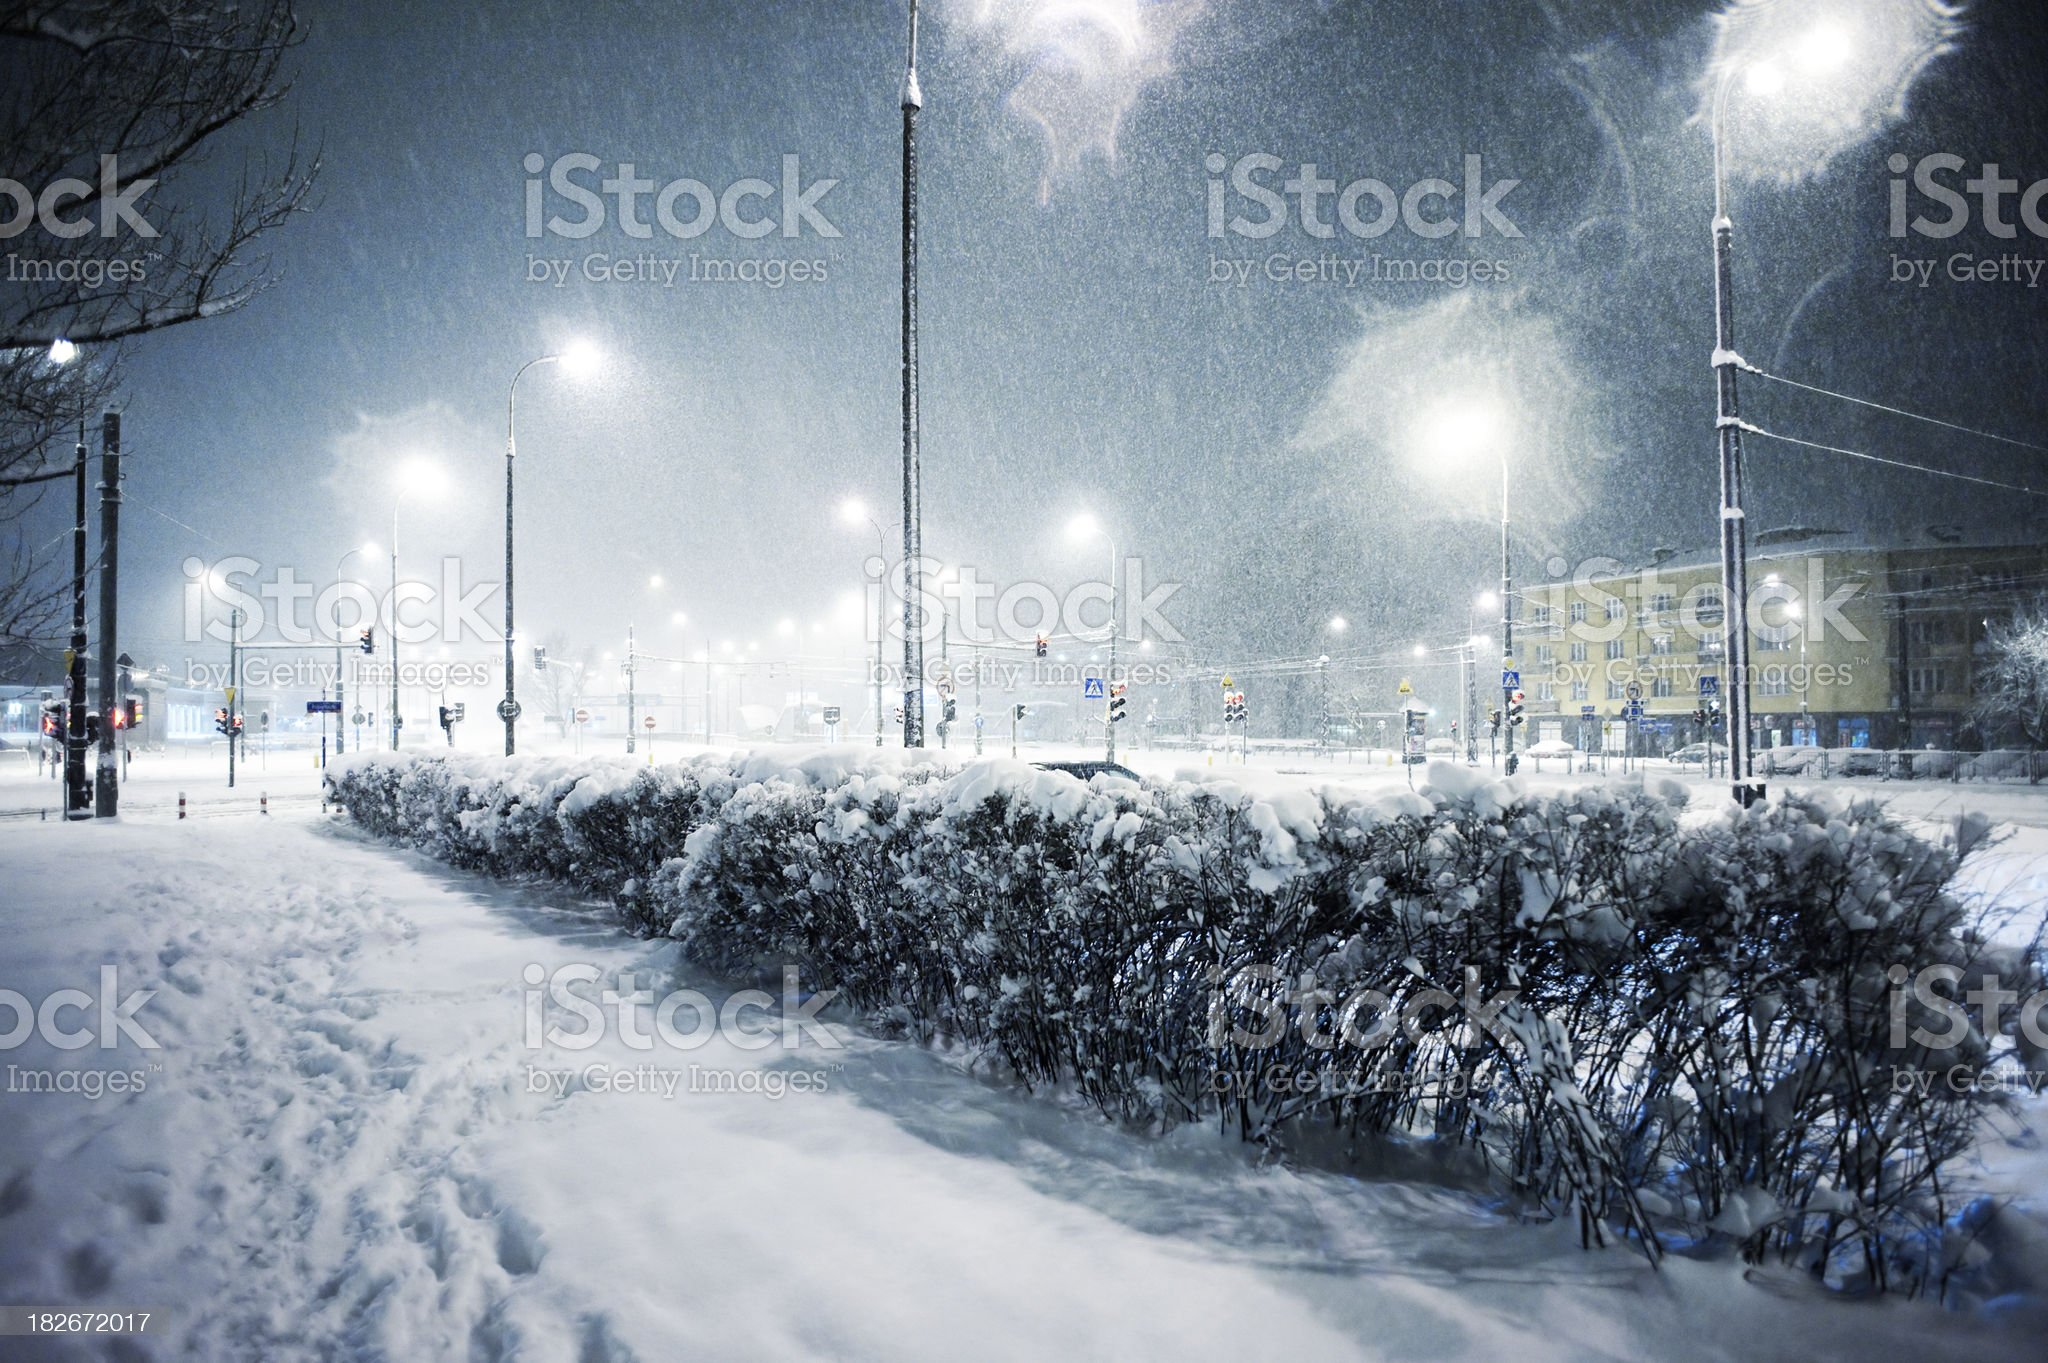 Snowing in the city at night royalty-free stock photo